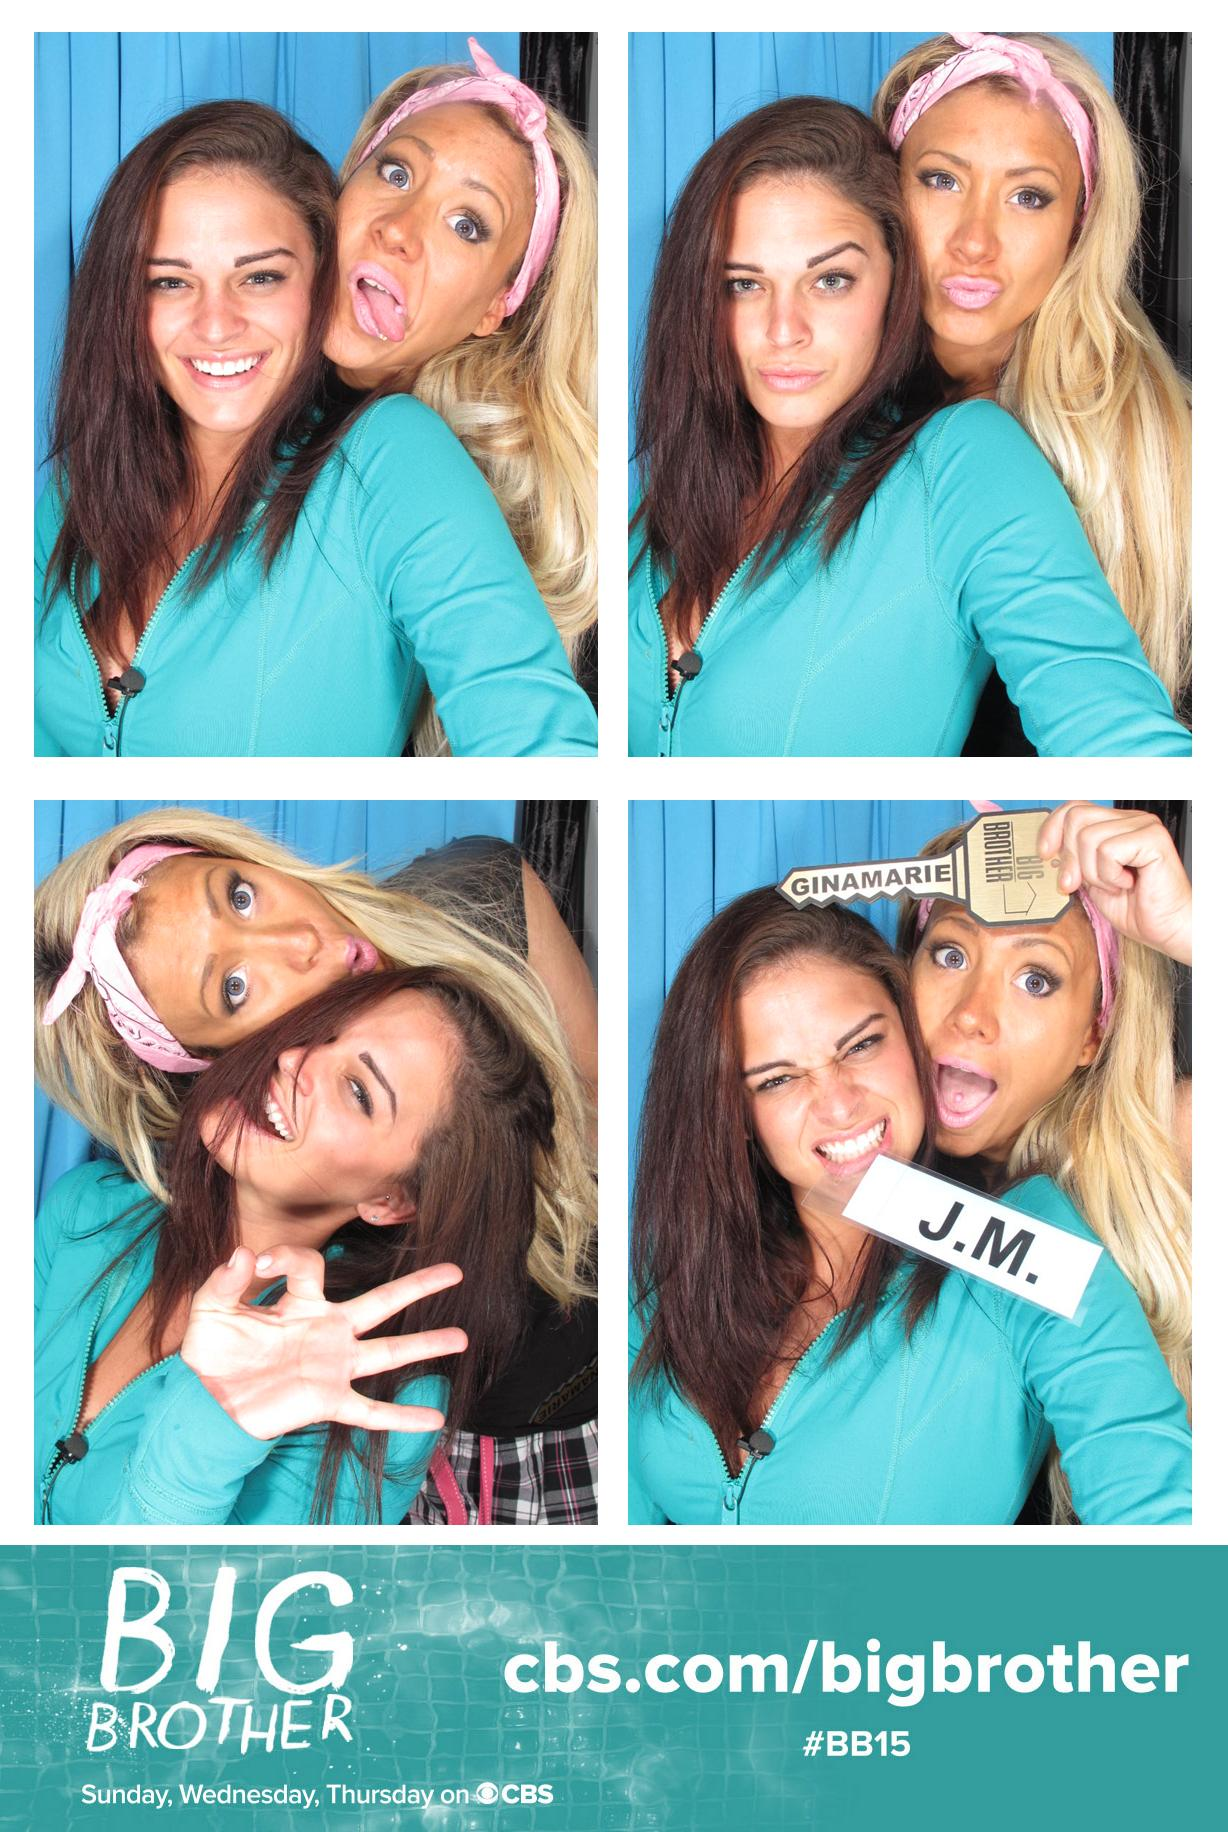 Kaitlin and GinaMarie